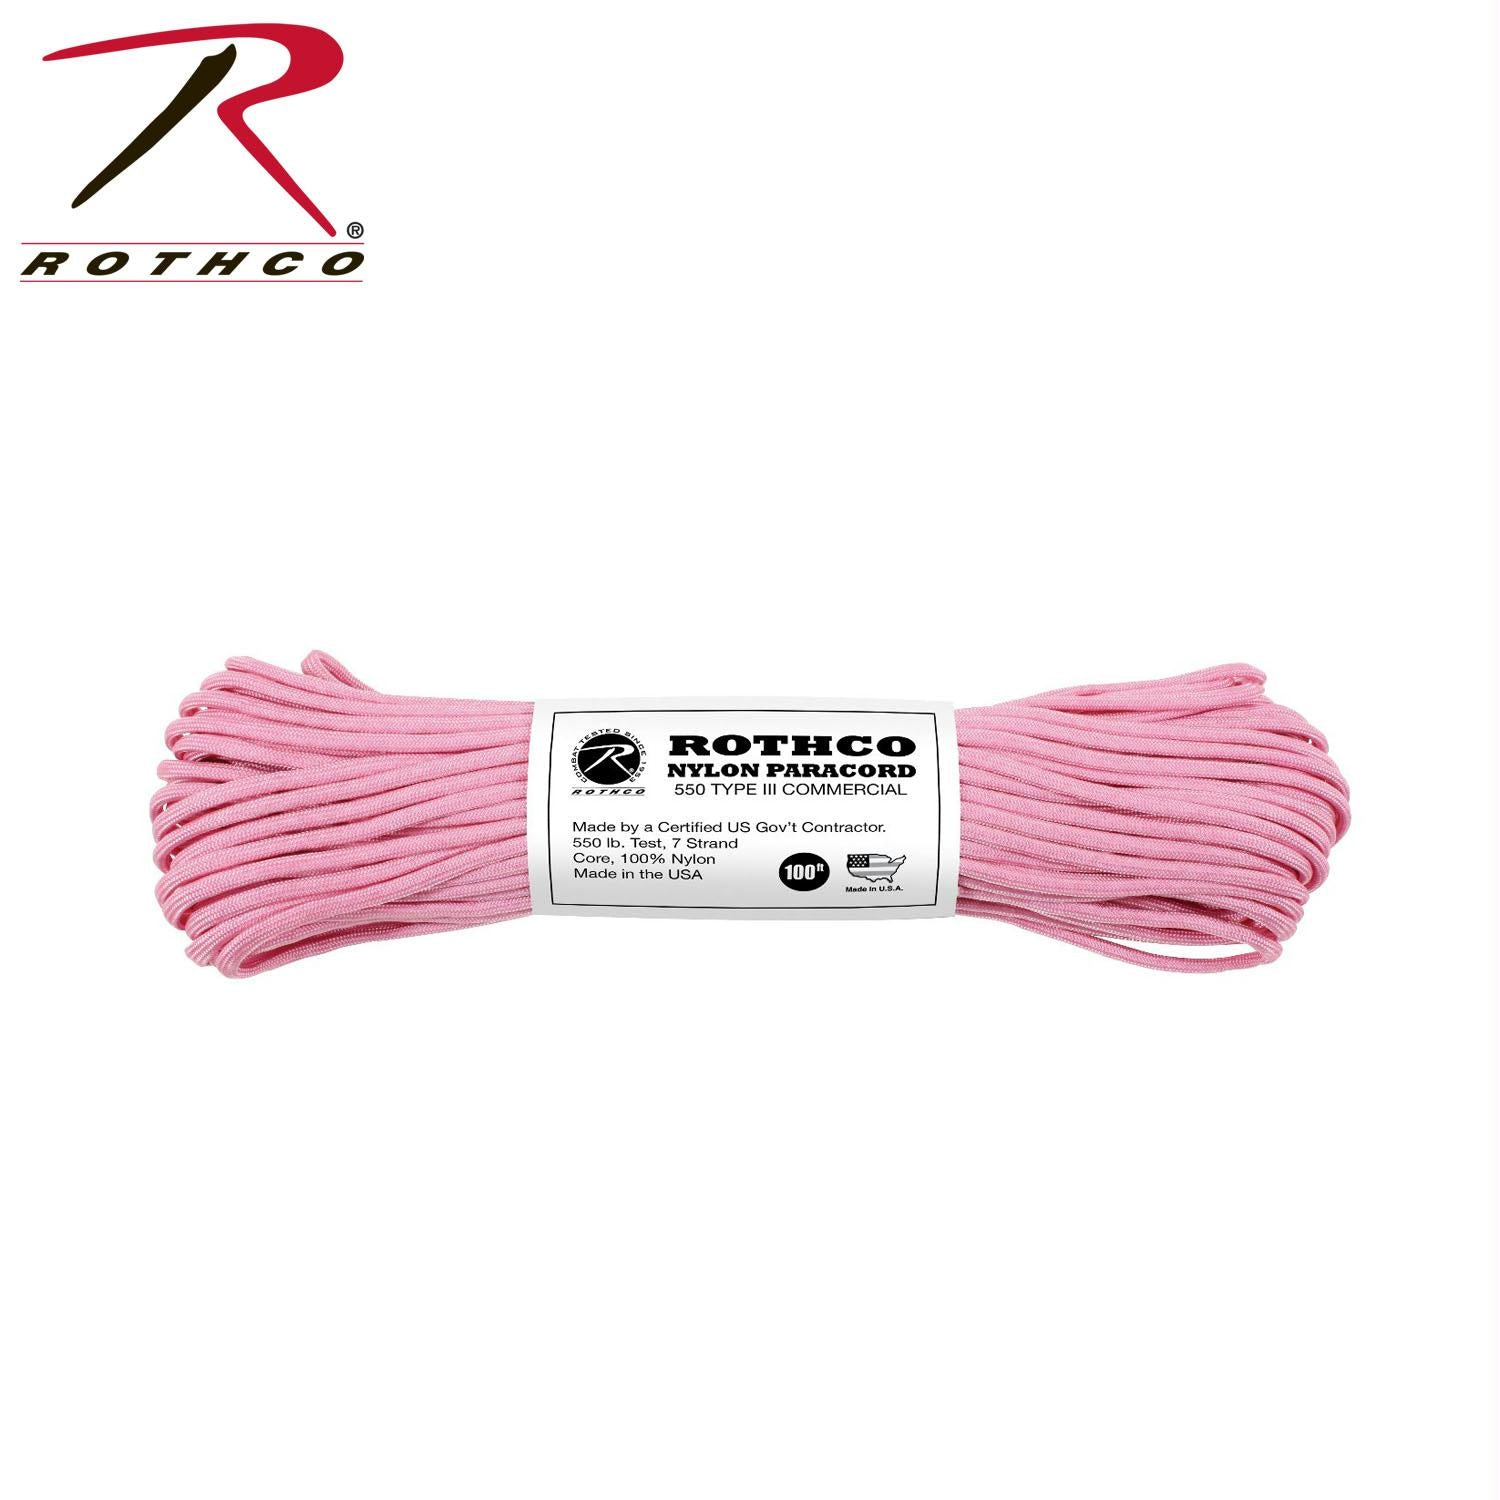 Rothco Nylon Paracord Type III 550 LB 100FT - Rose Pink